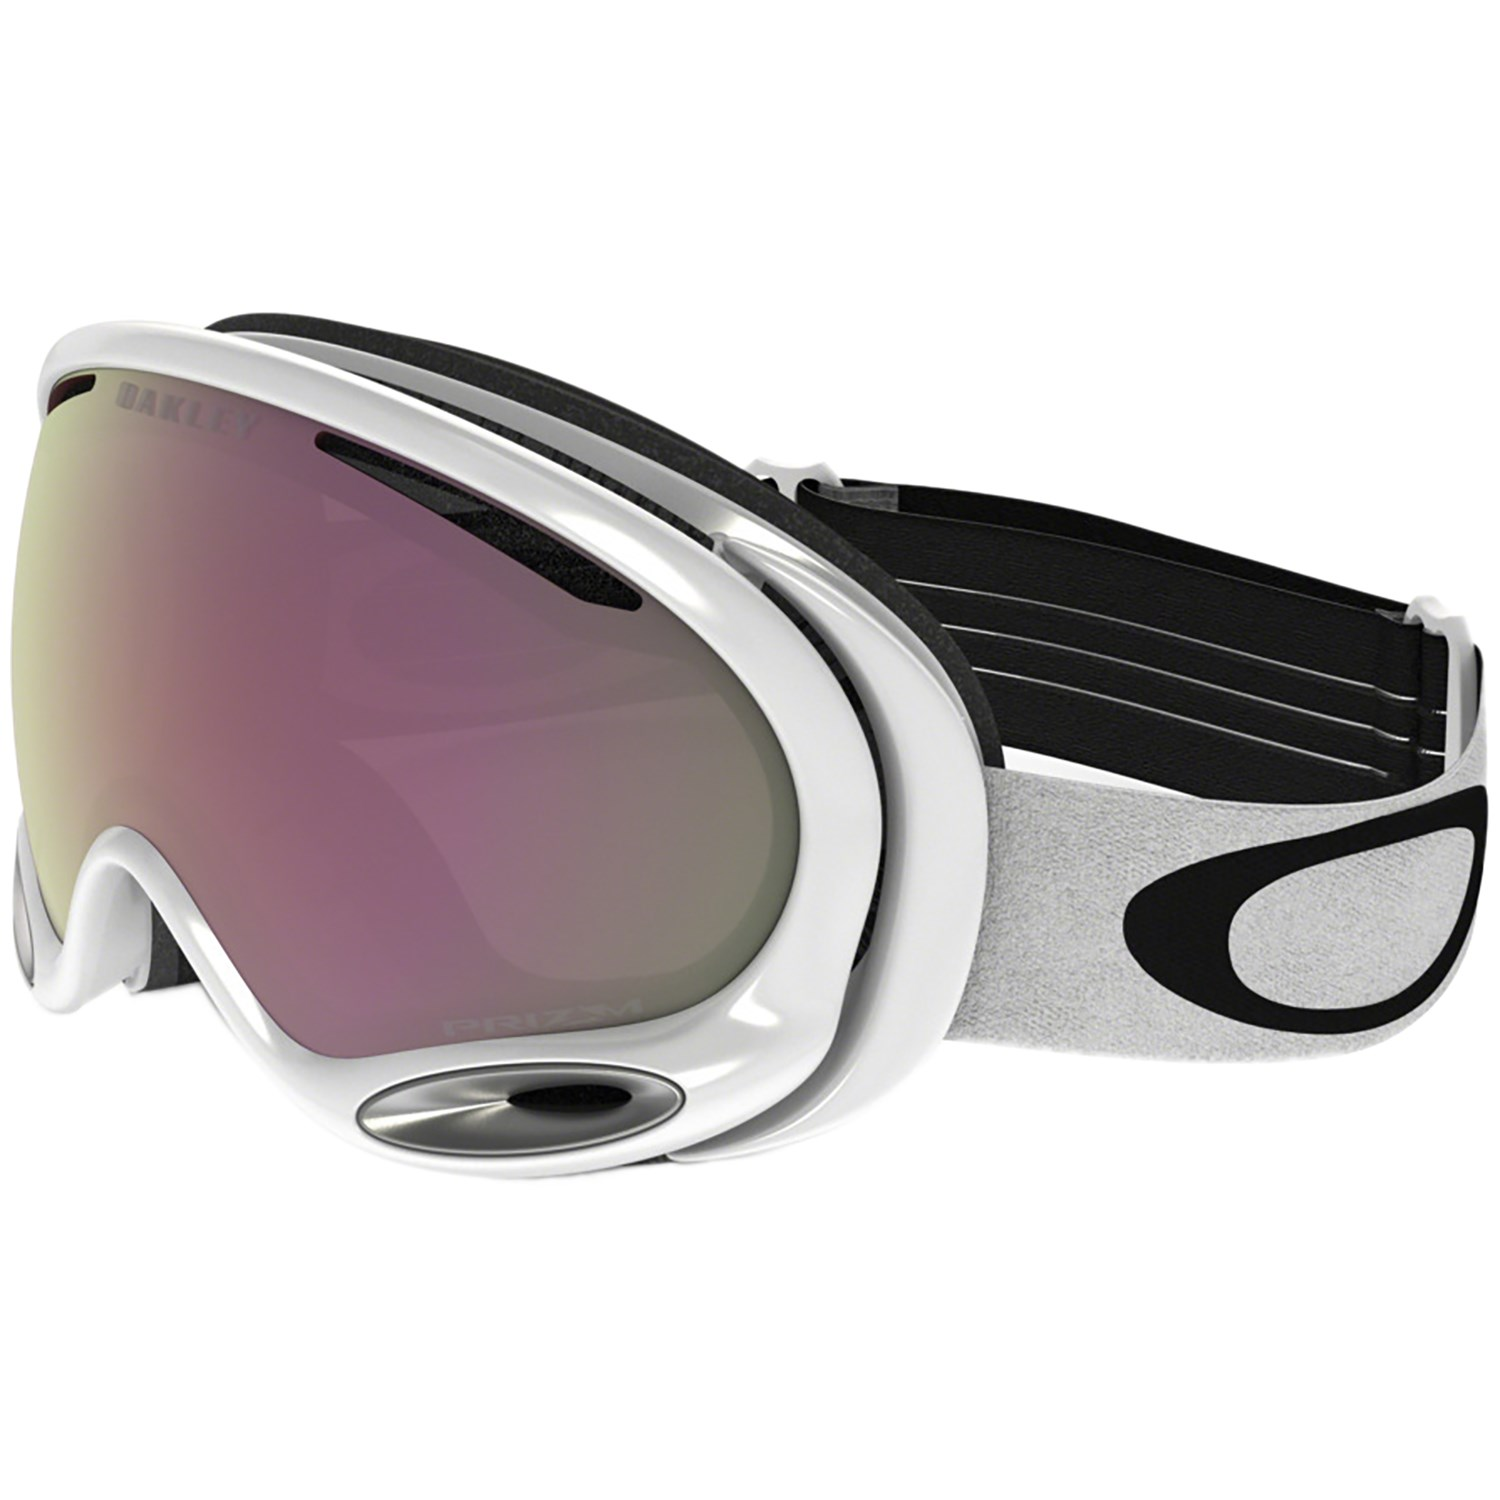 366300f77977 Oakley A Frame 2.0 Goggles